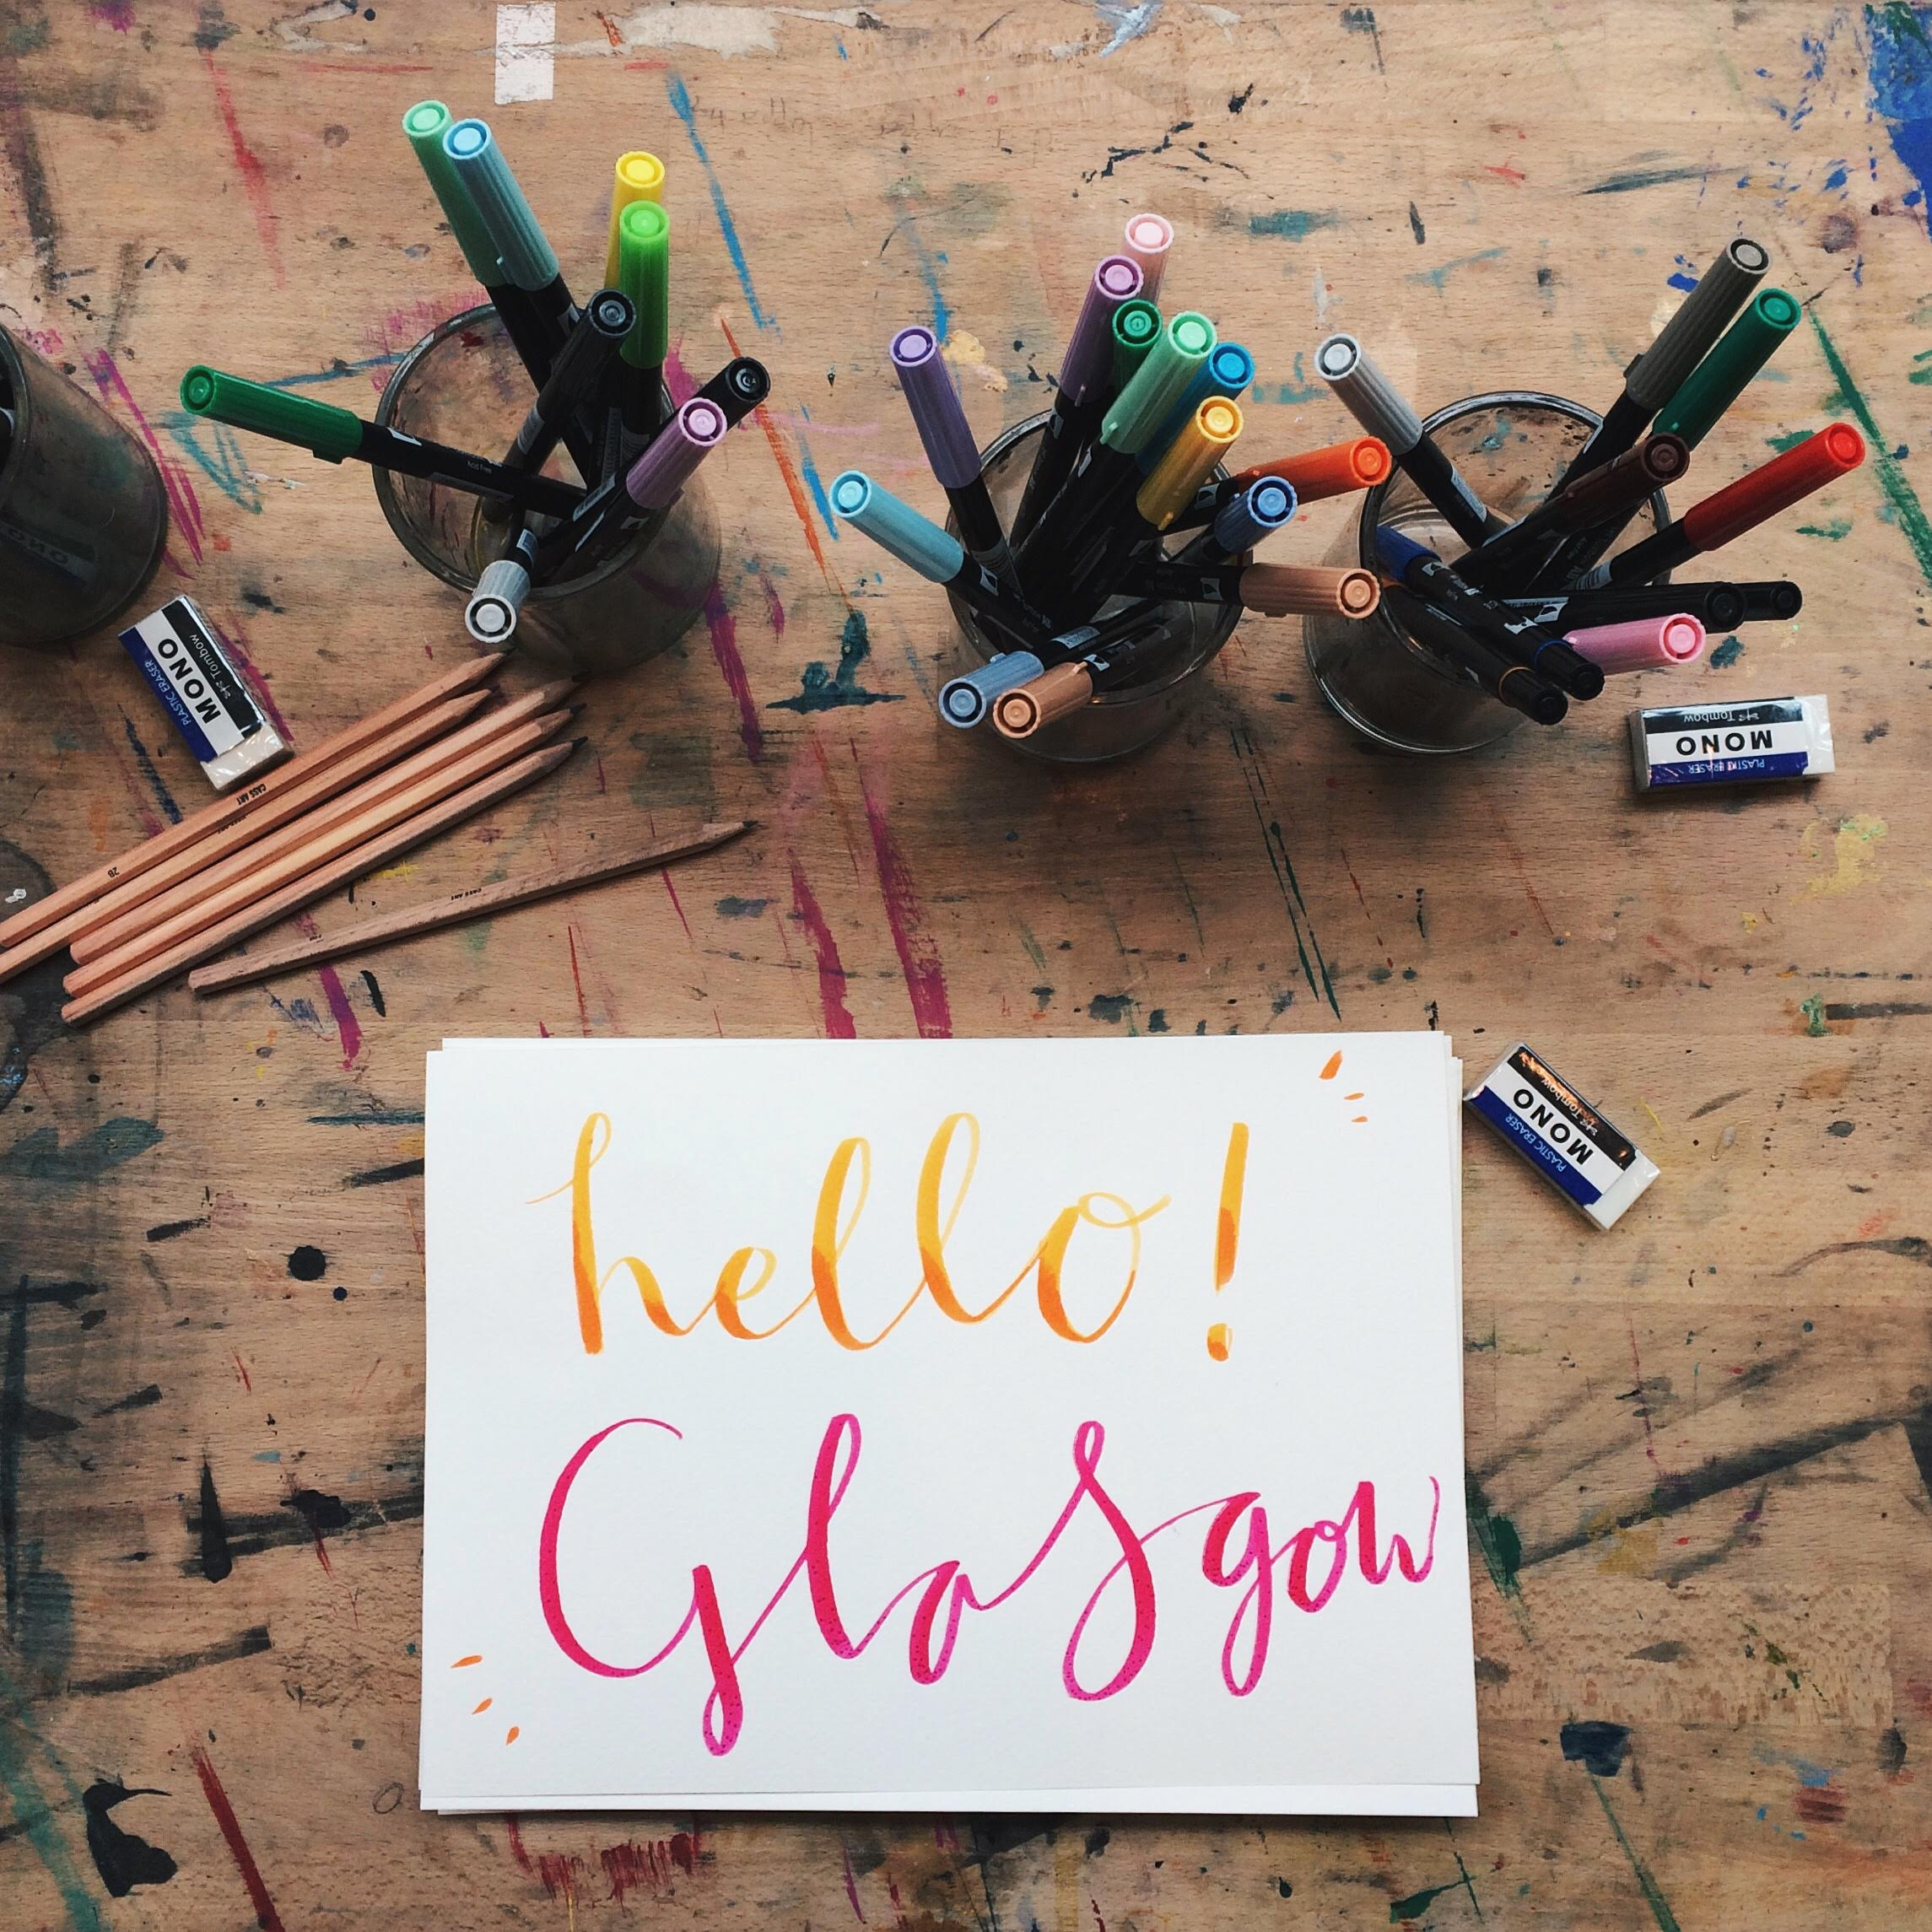 creative workshops glasgow edinburgh newcastle tombow ABT brush markers katie chappell illustrator.JPG